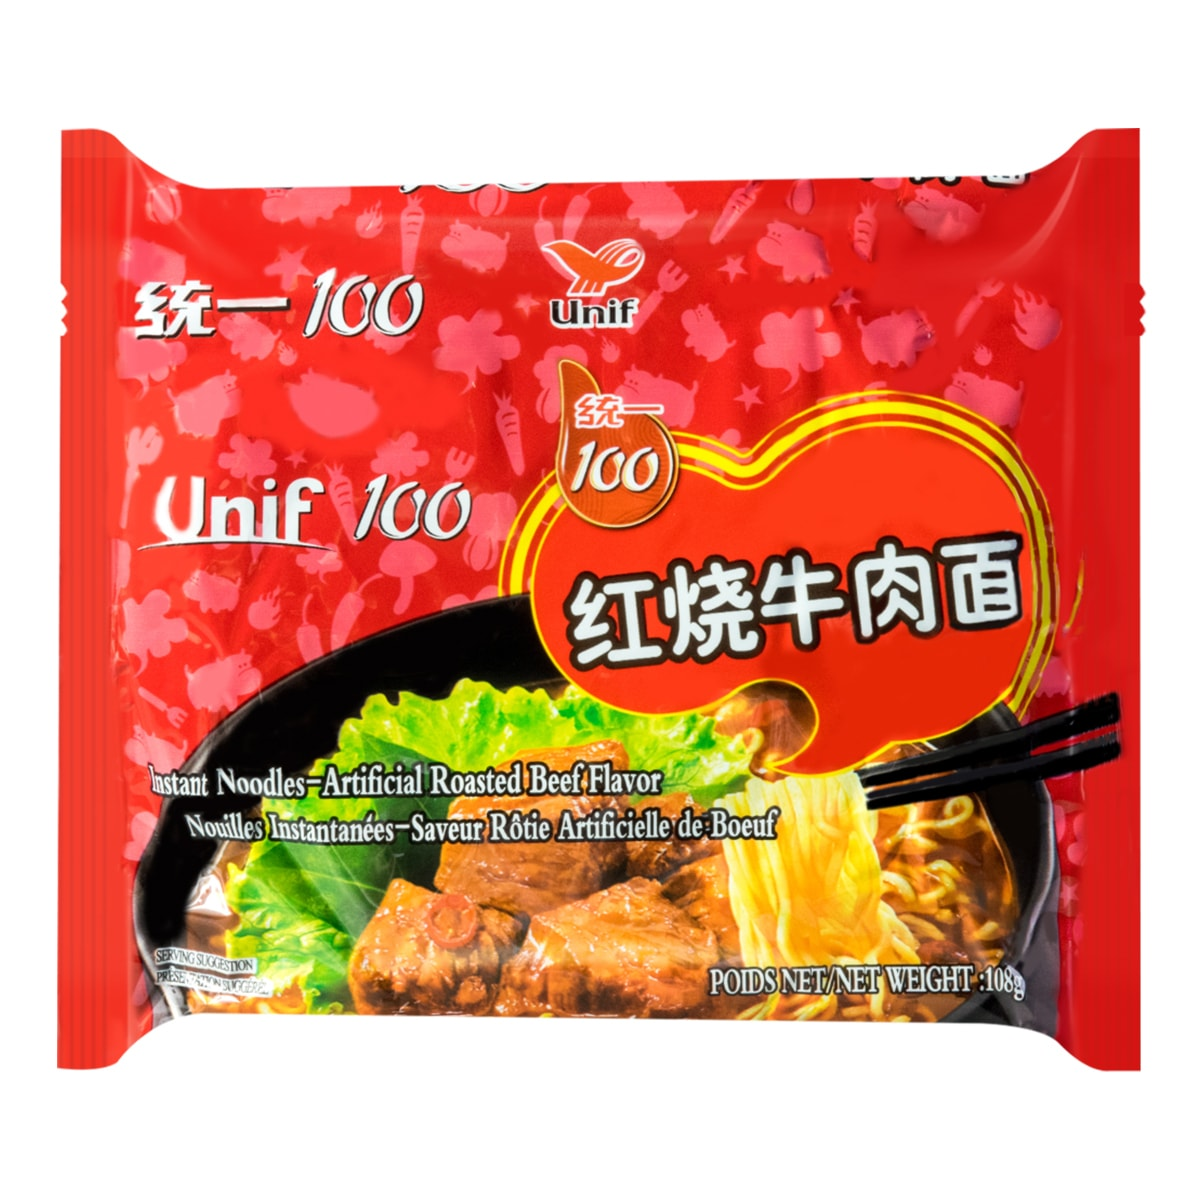 Yamibuy.com:Customer reviews:UNIF 100 Instant Noodle Artificial Roasted Beef Flavor 108g